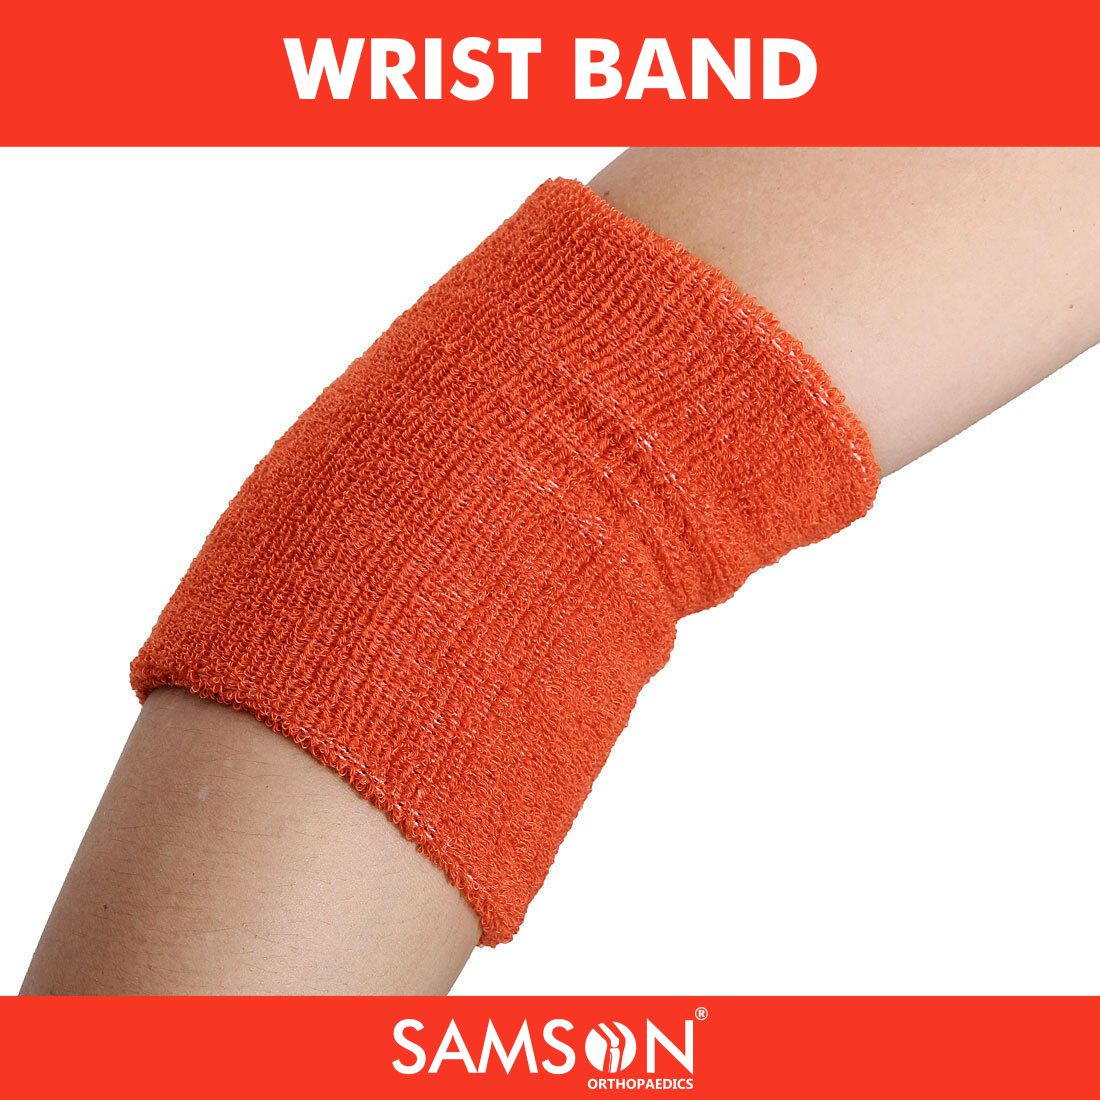 ELBOW BAND ONLINE IMAGES 1